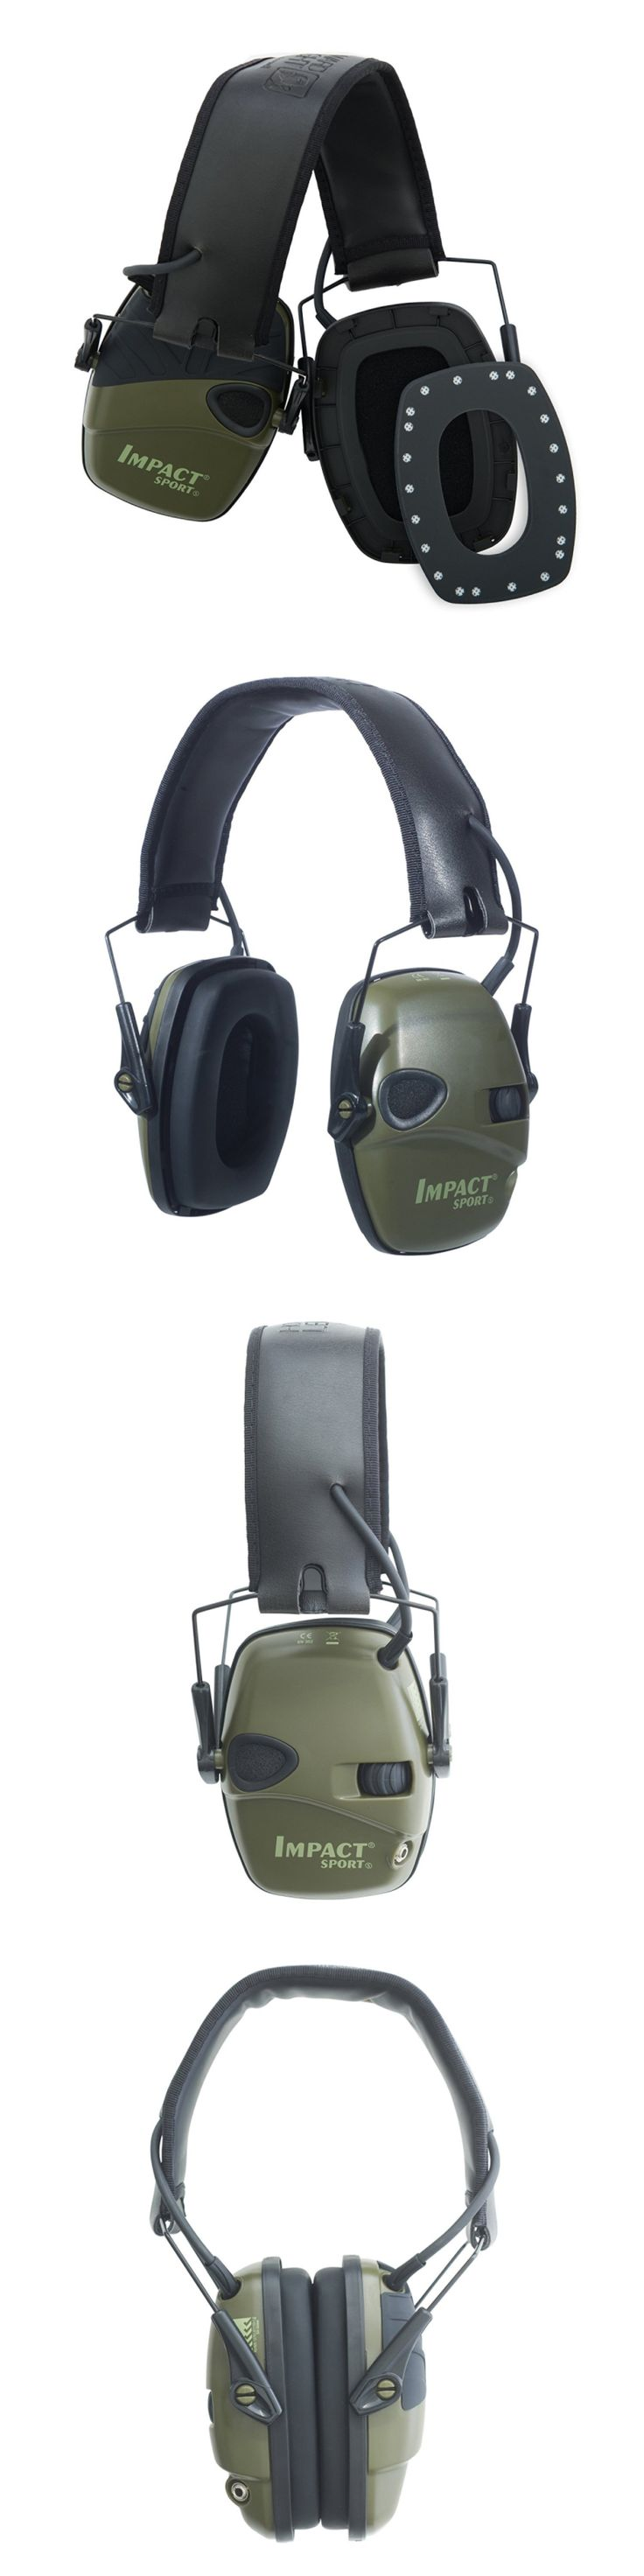 Hearing Protection 73942: Gun Ear Muff Protection Earmuff Hearing Shooting Noise Electronic Folding Green -> BUY IT NOW ONLY: $55.07 on eBay!